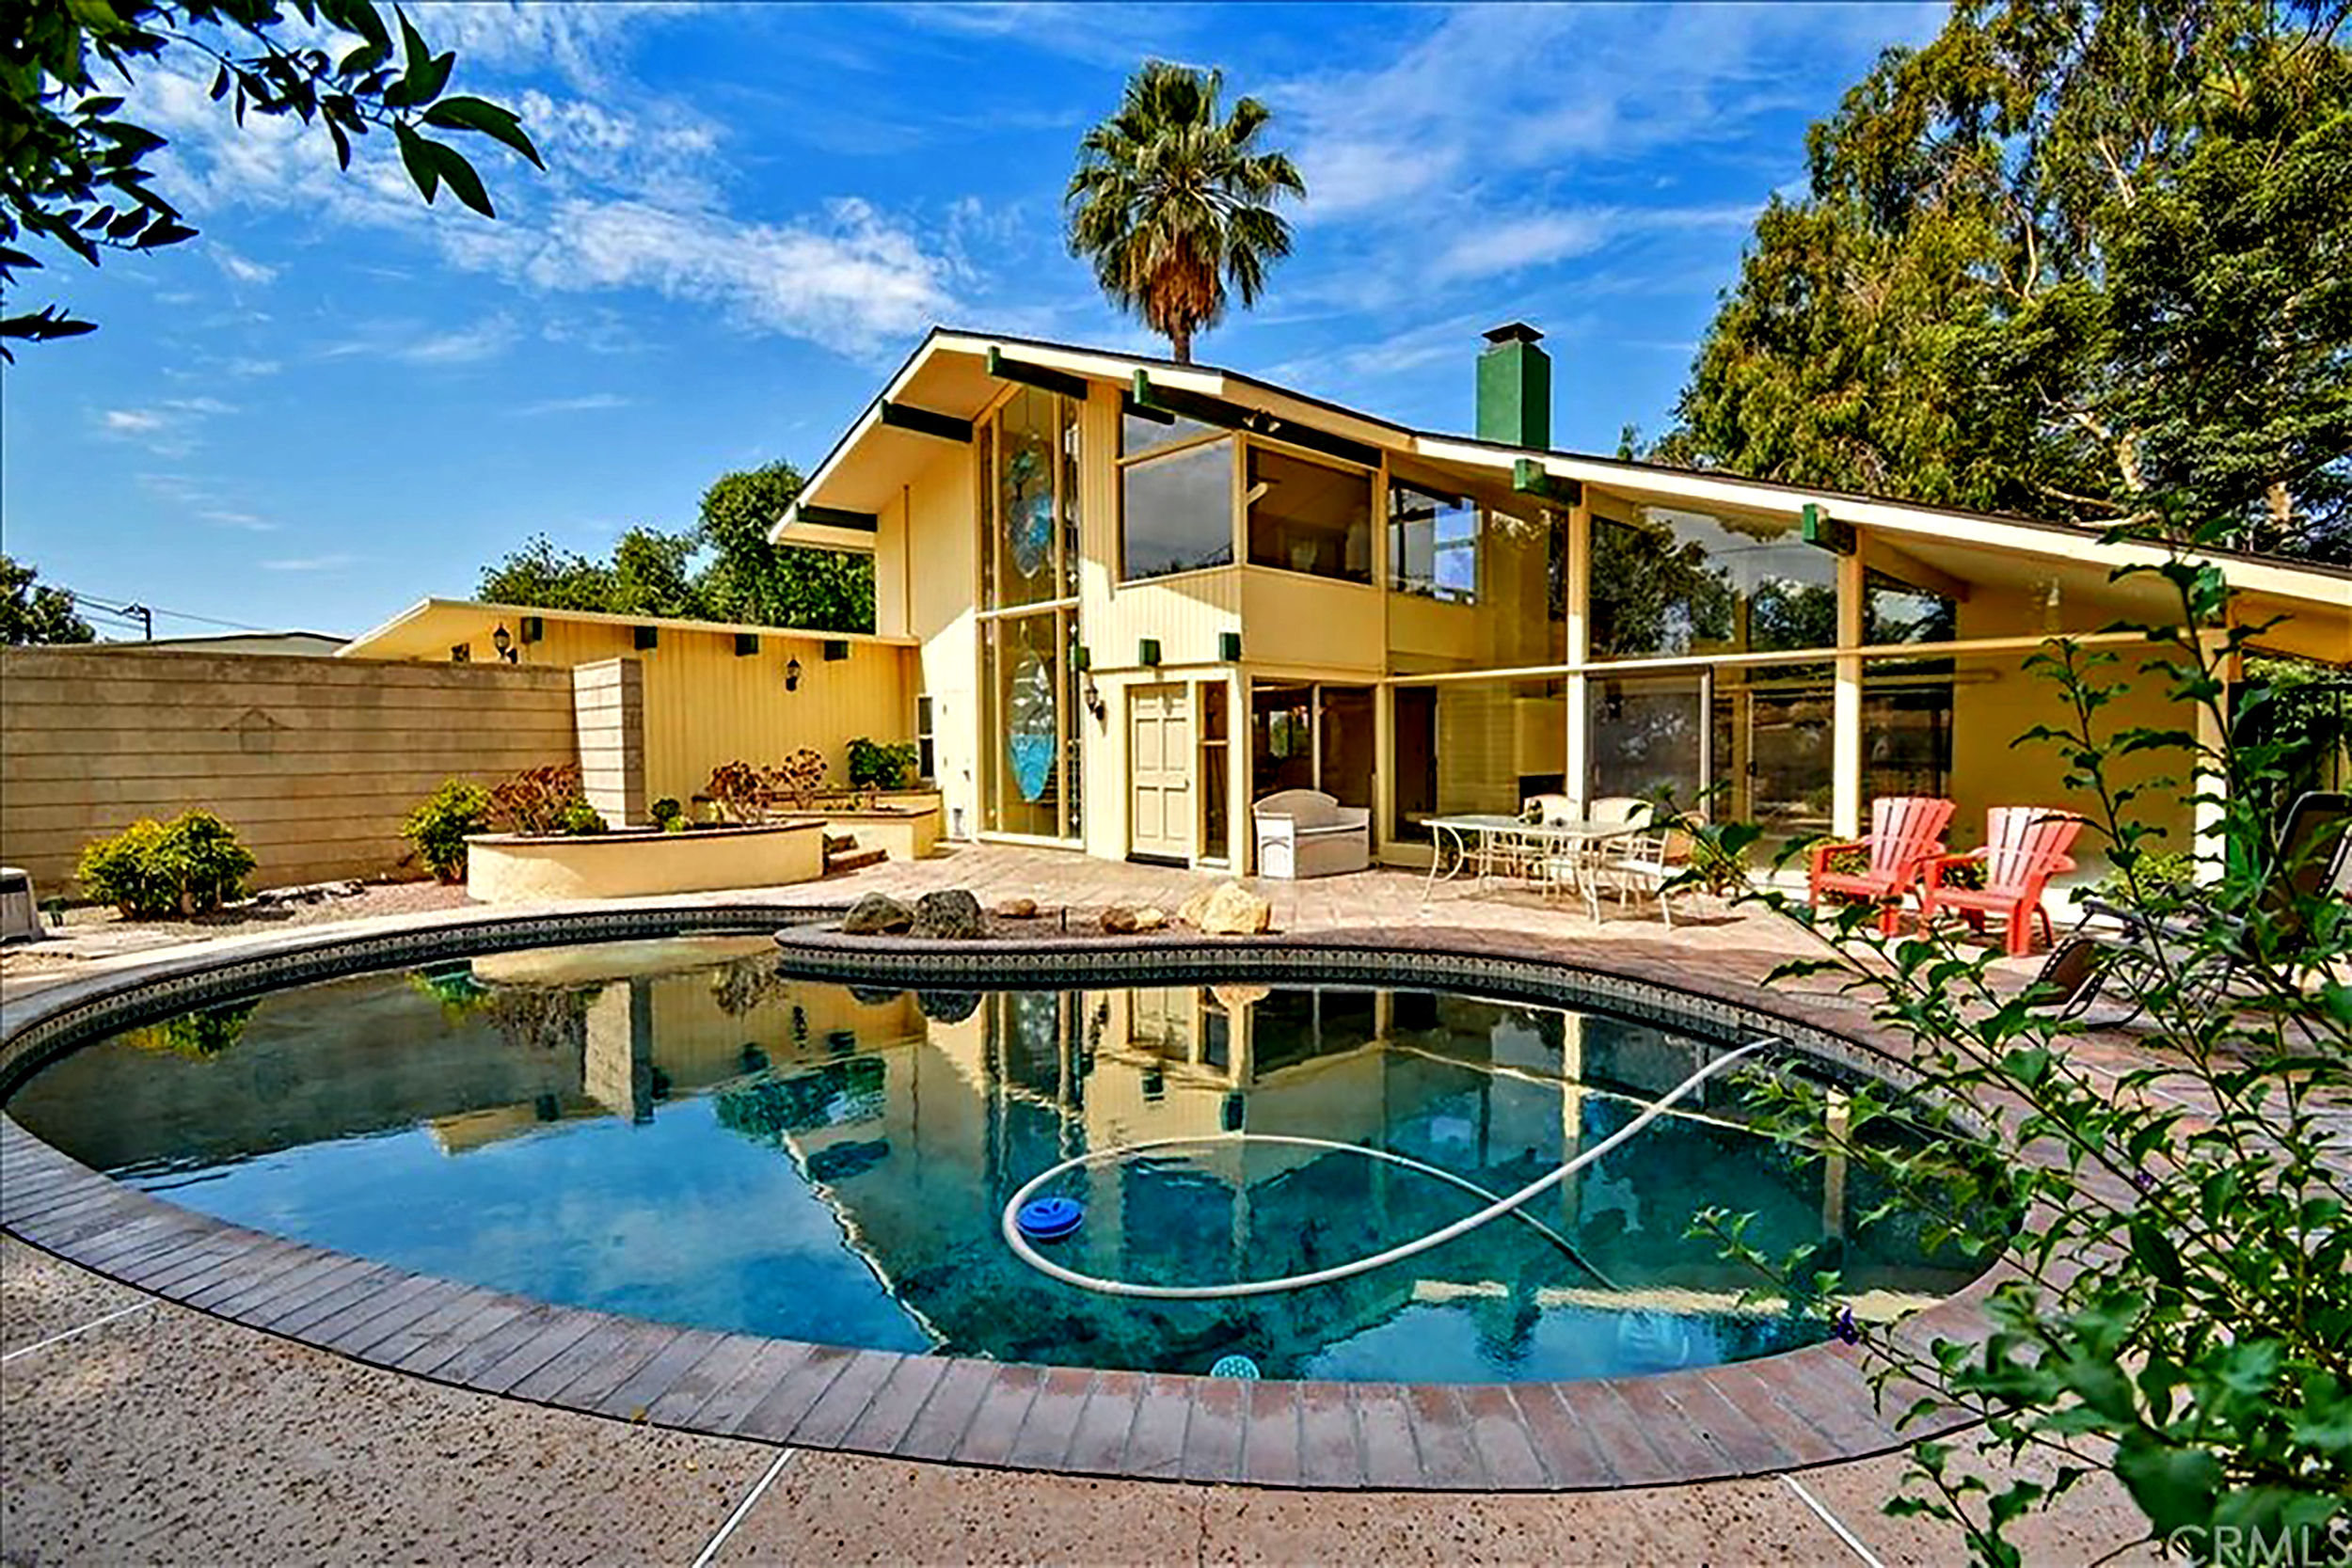 Beat the heat: What $700,000 buys with a pool right now in three San Bernardino County cities